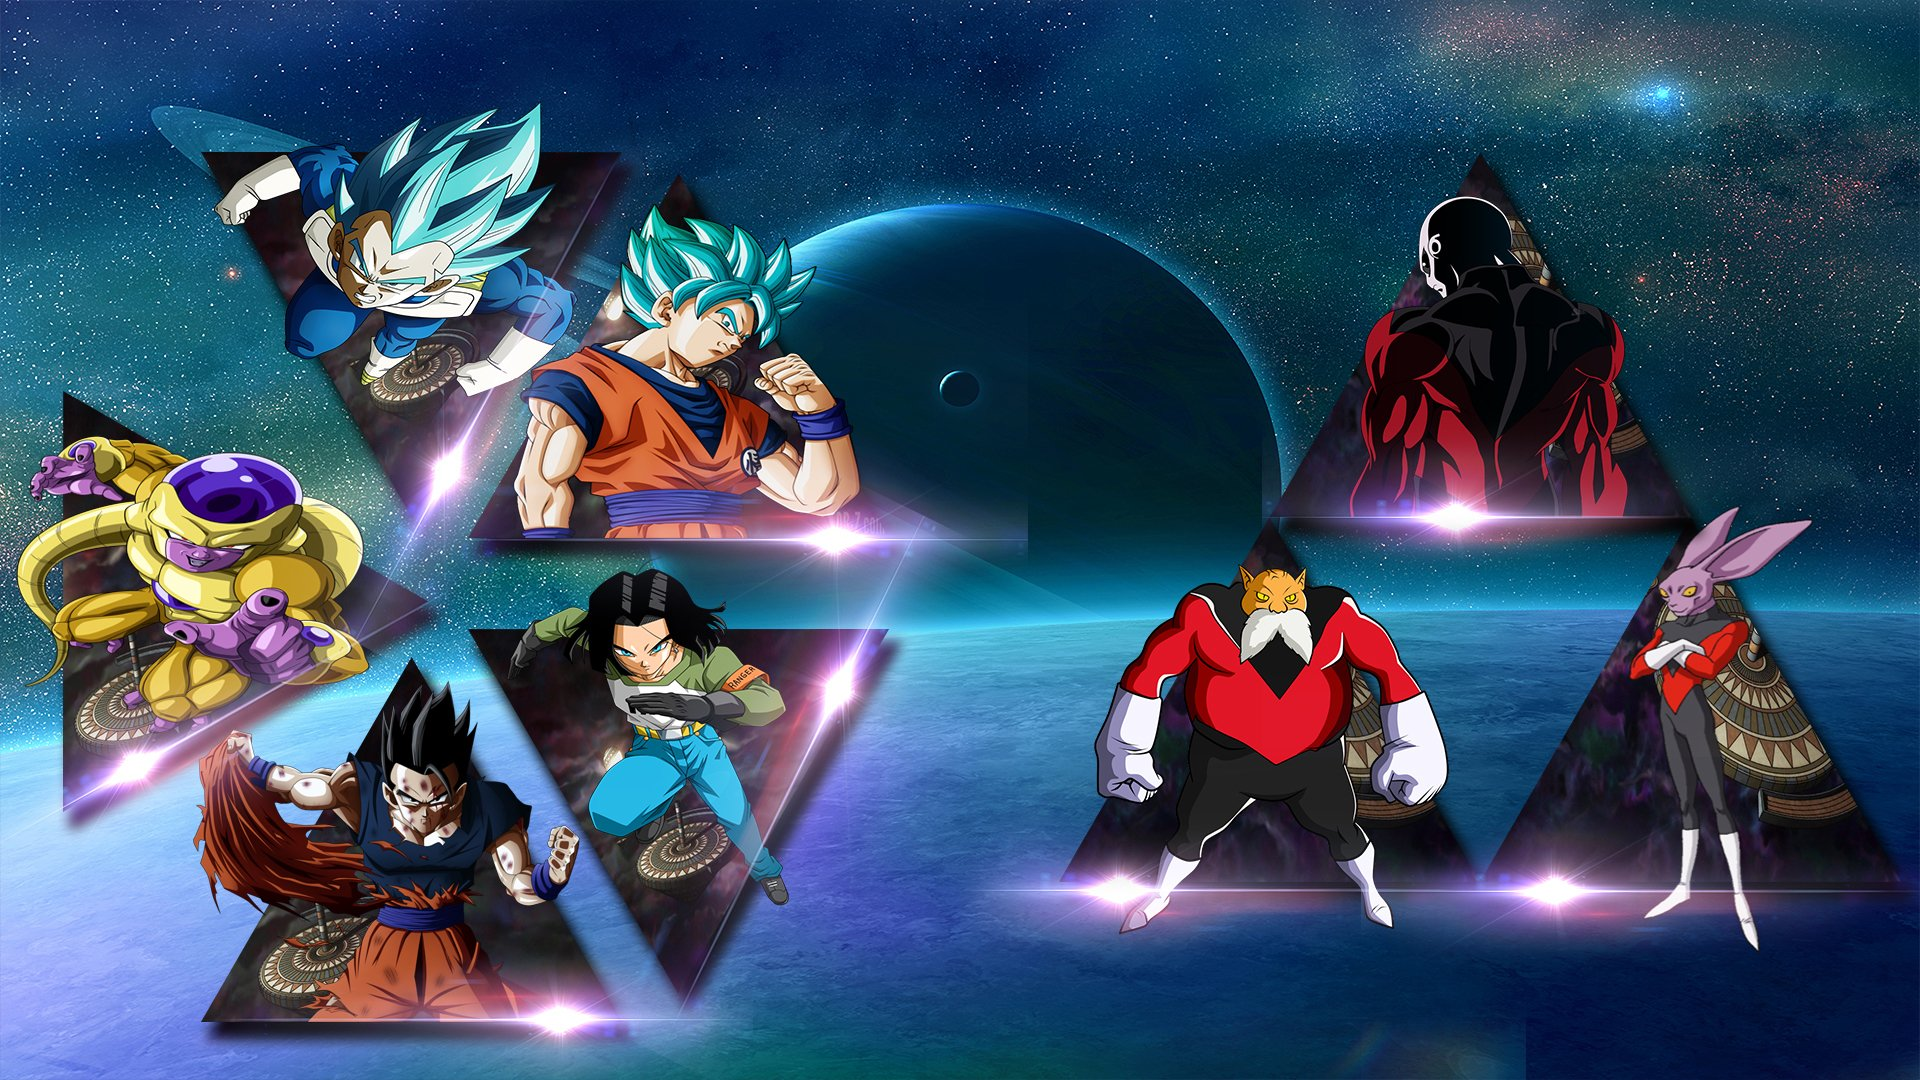 3 Dyspo Dragon Ball Hd Wallpapers Background Images Wallpaper Abyss